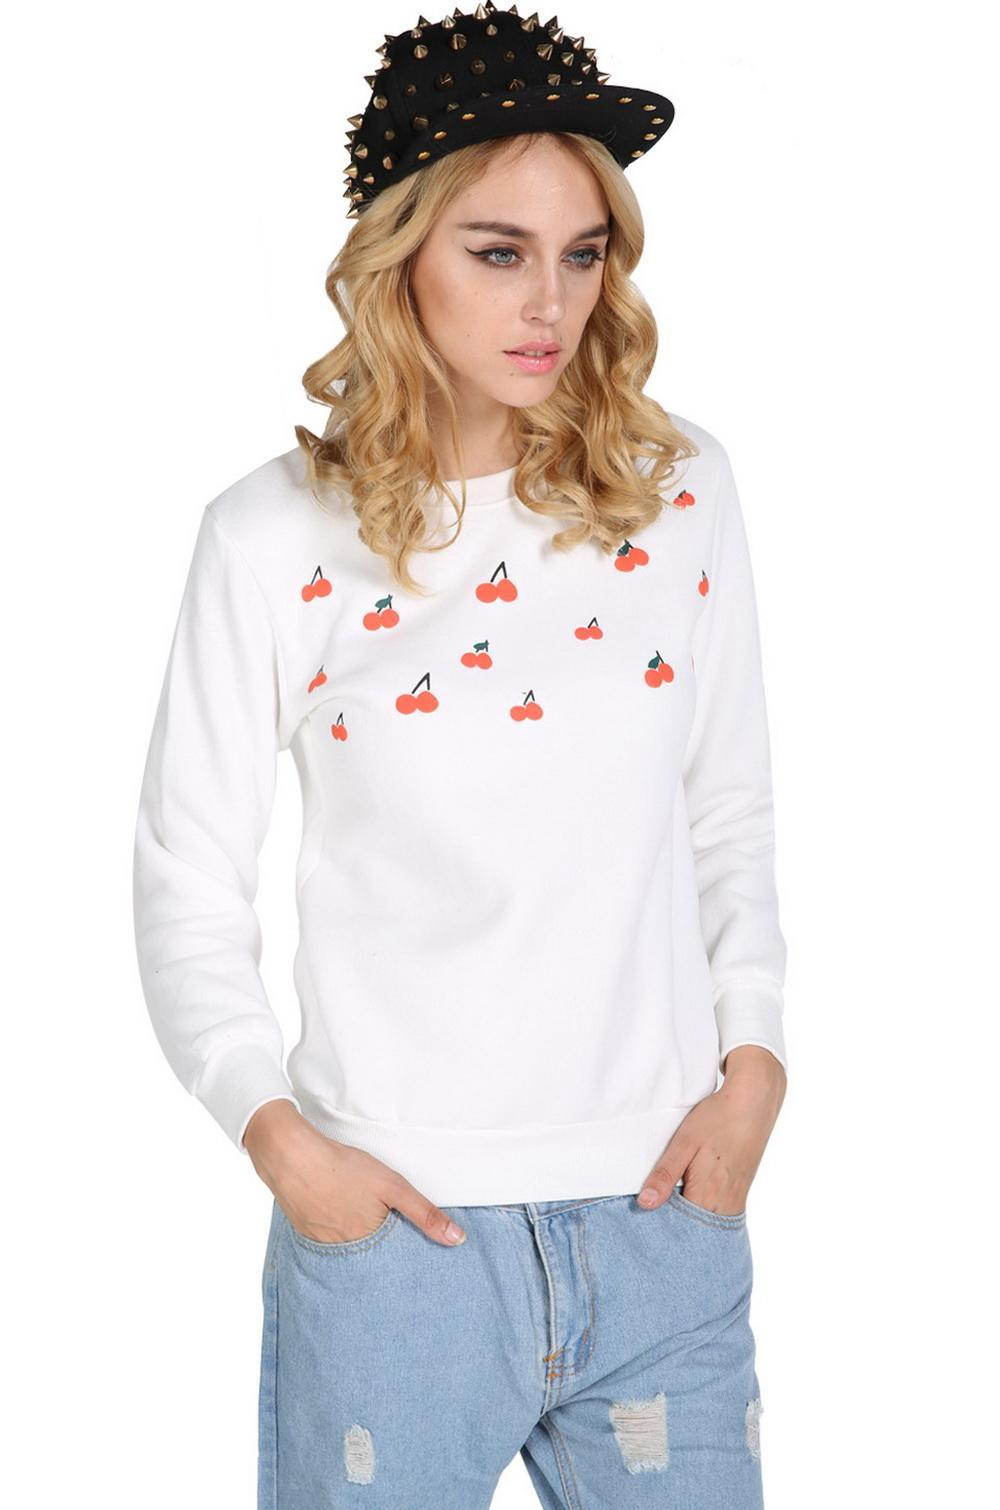 Cyber women long sleeve hoodies lovely cherry cotton t for White cotton long sleeve t shirt